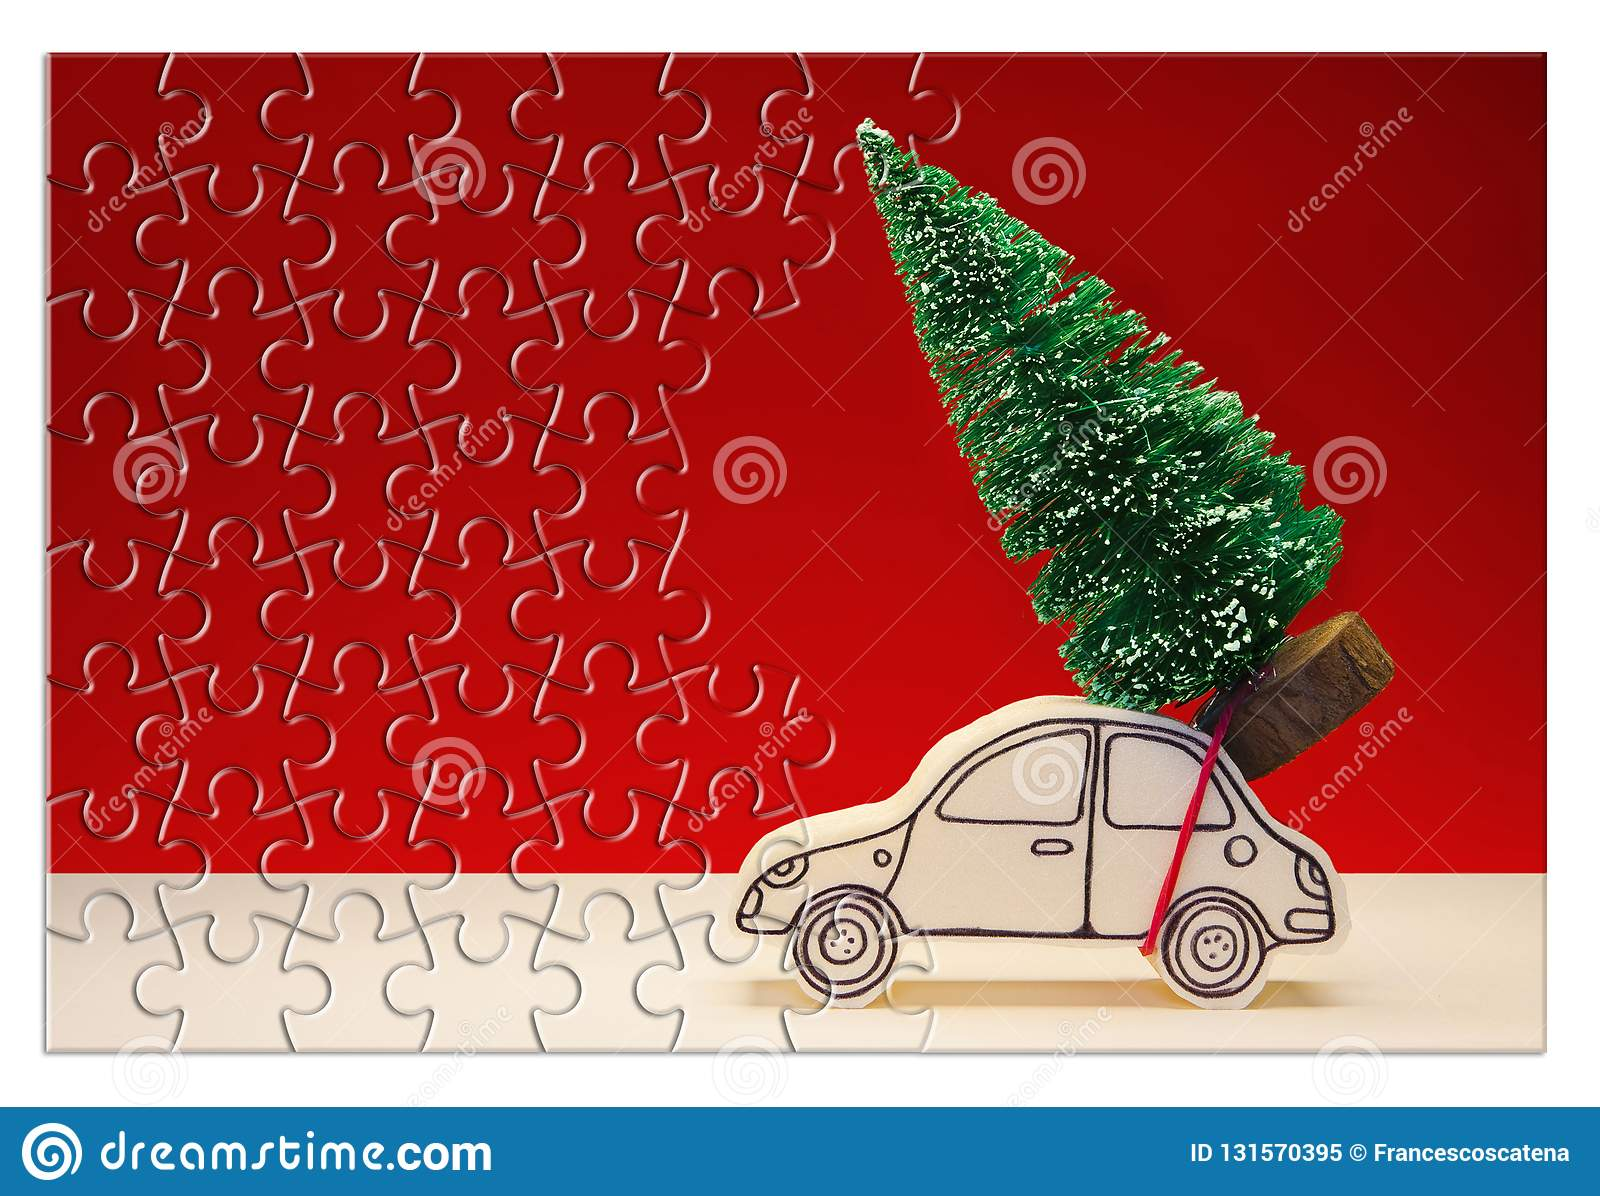 Hurry up! Christmas is coming! Holiday concept with a small pine tree on handmade cartoon toy car in jigsaw puzzle shape